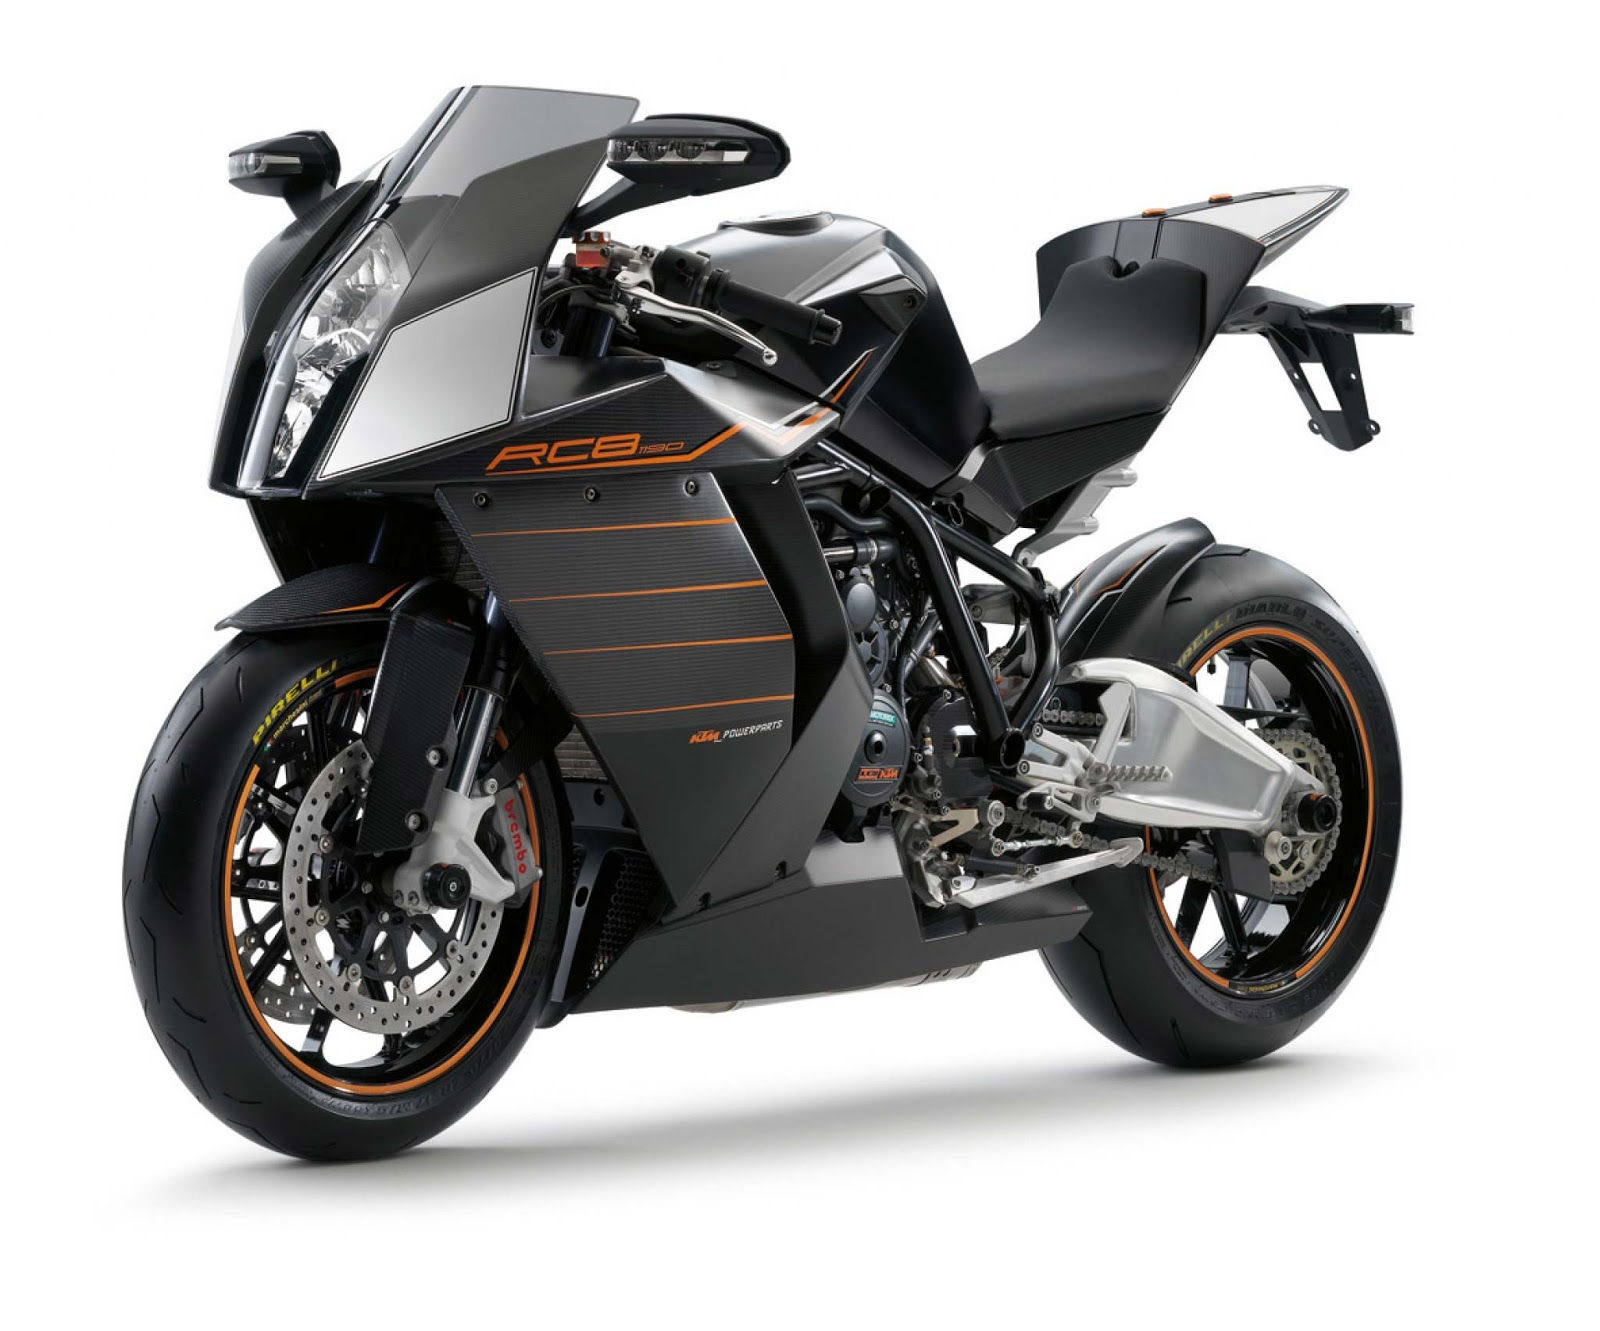 Corbin Motorcycle Seats & Accessories | KTM RC8 | 800-538-7035